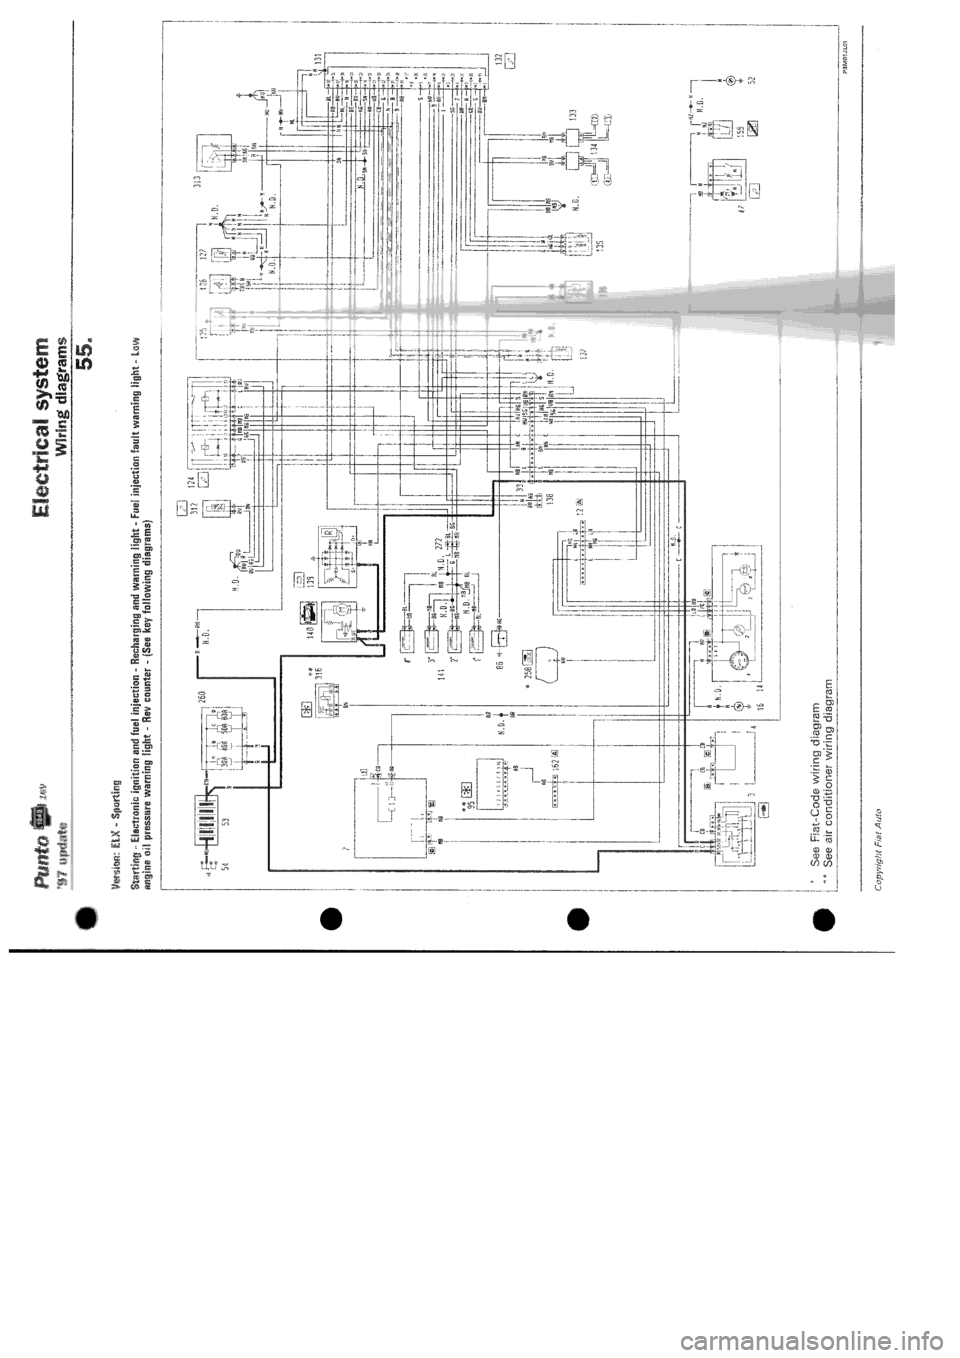 hight resolution of fiat punto 1997 176 1 g wiring diagrams workshop manual fiat wiring diagram load fiat